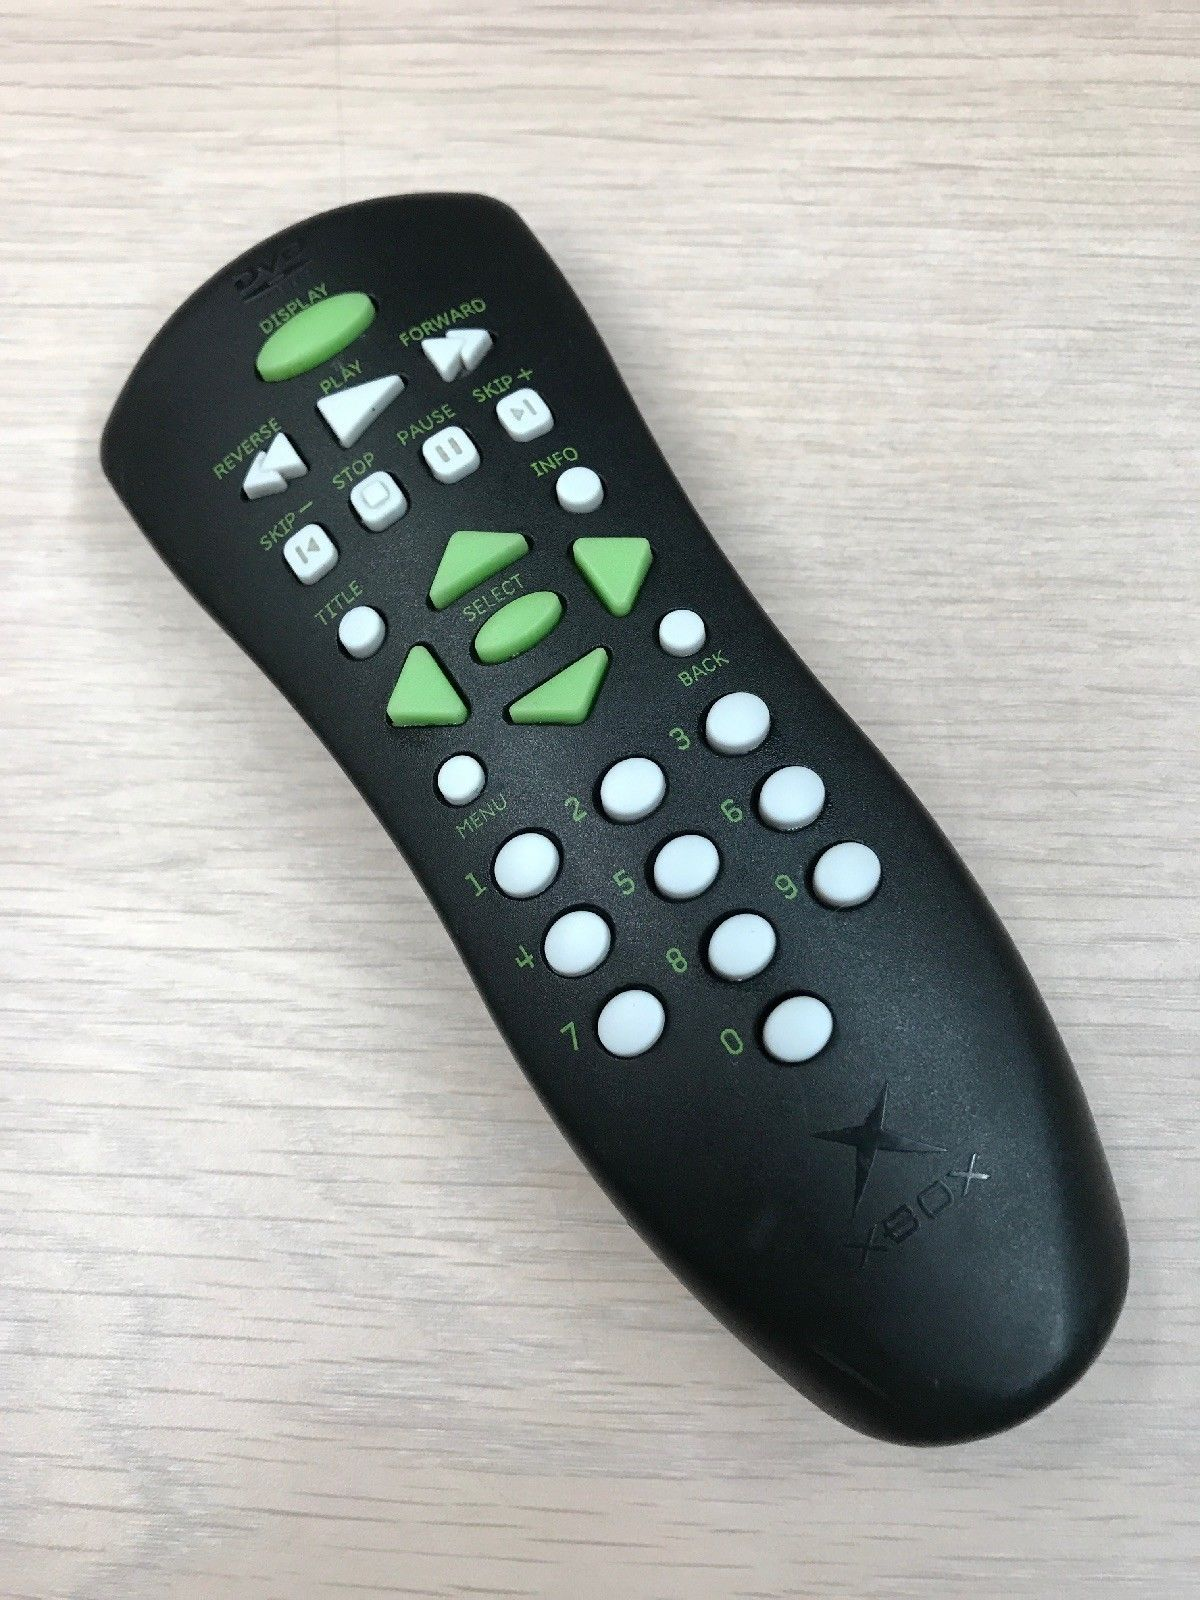 XBOX DVD Remote Control - Tested -                                          (V1)